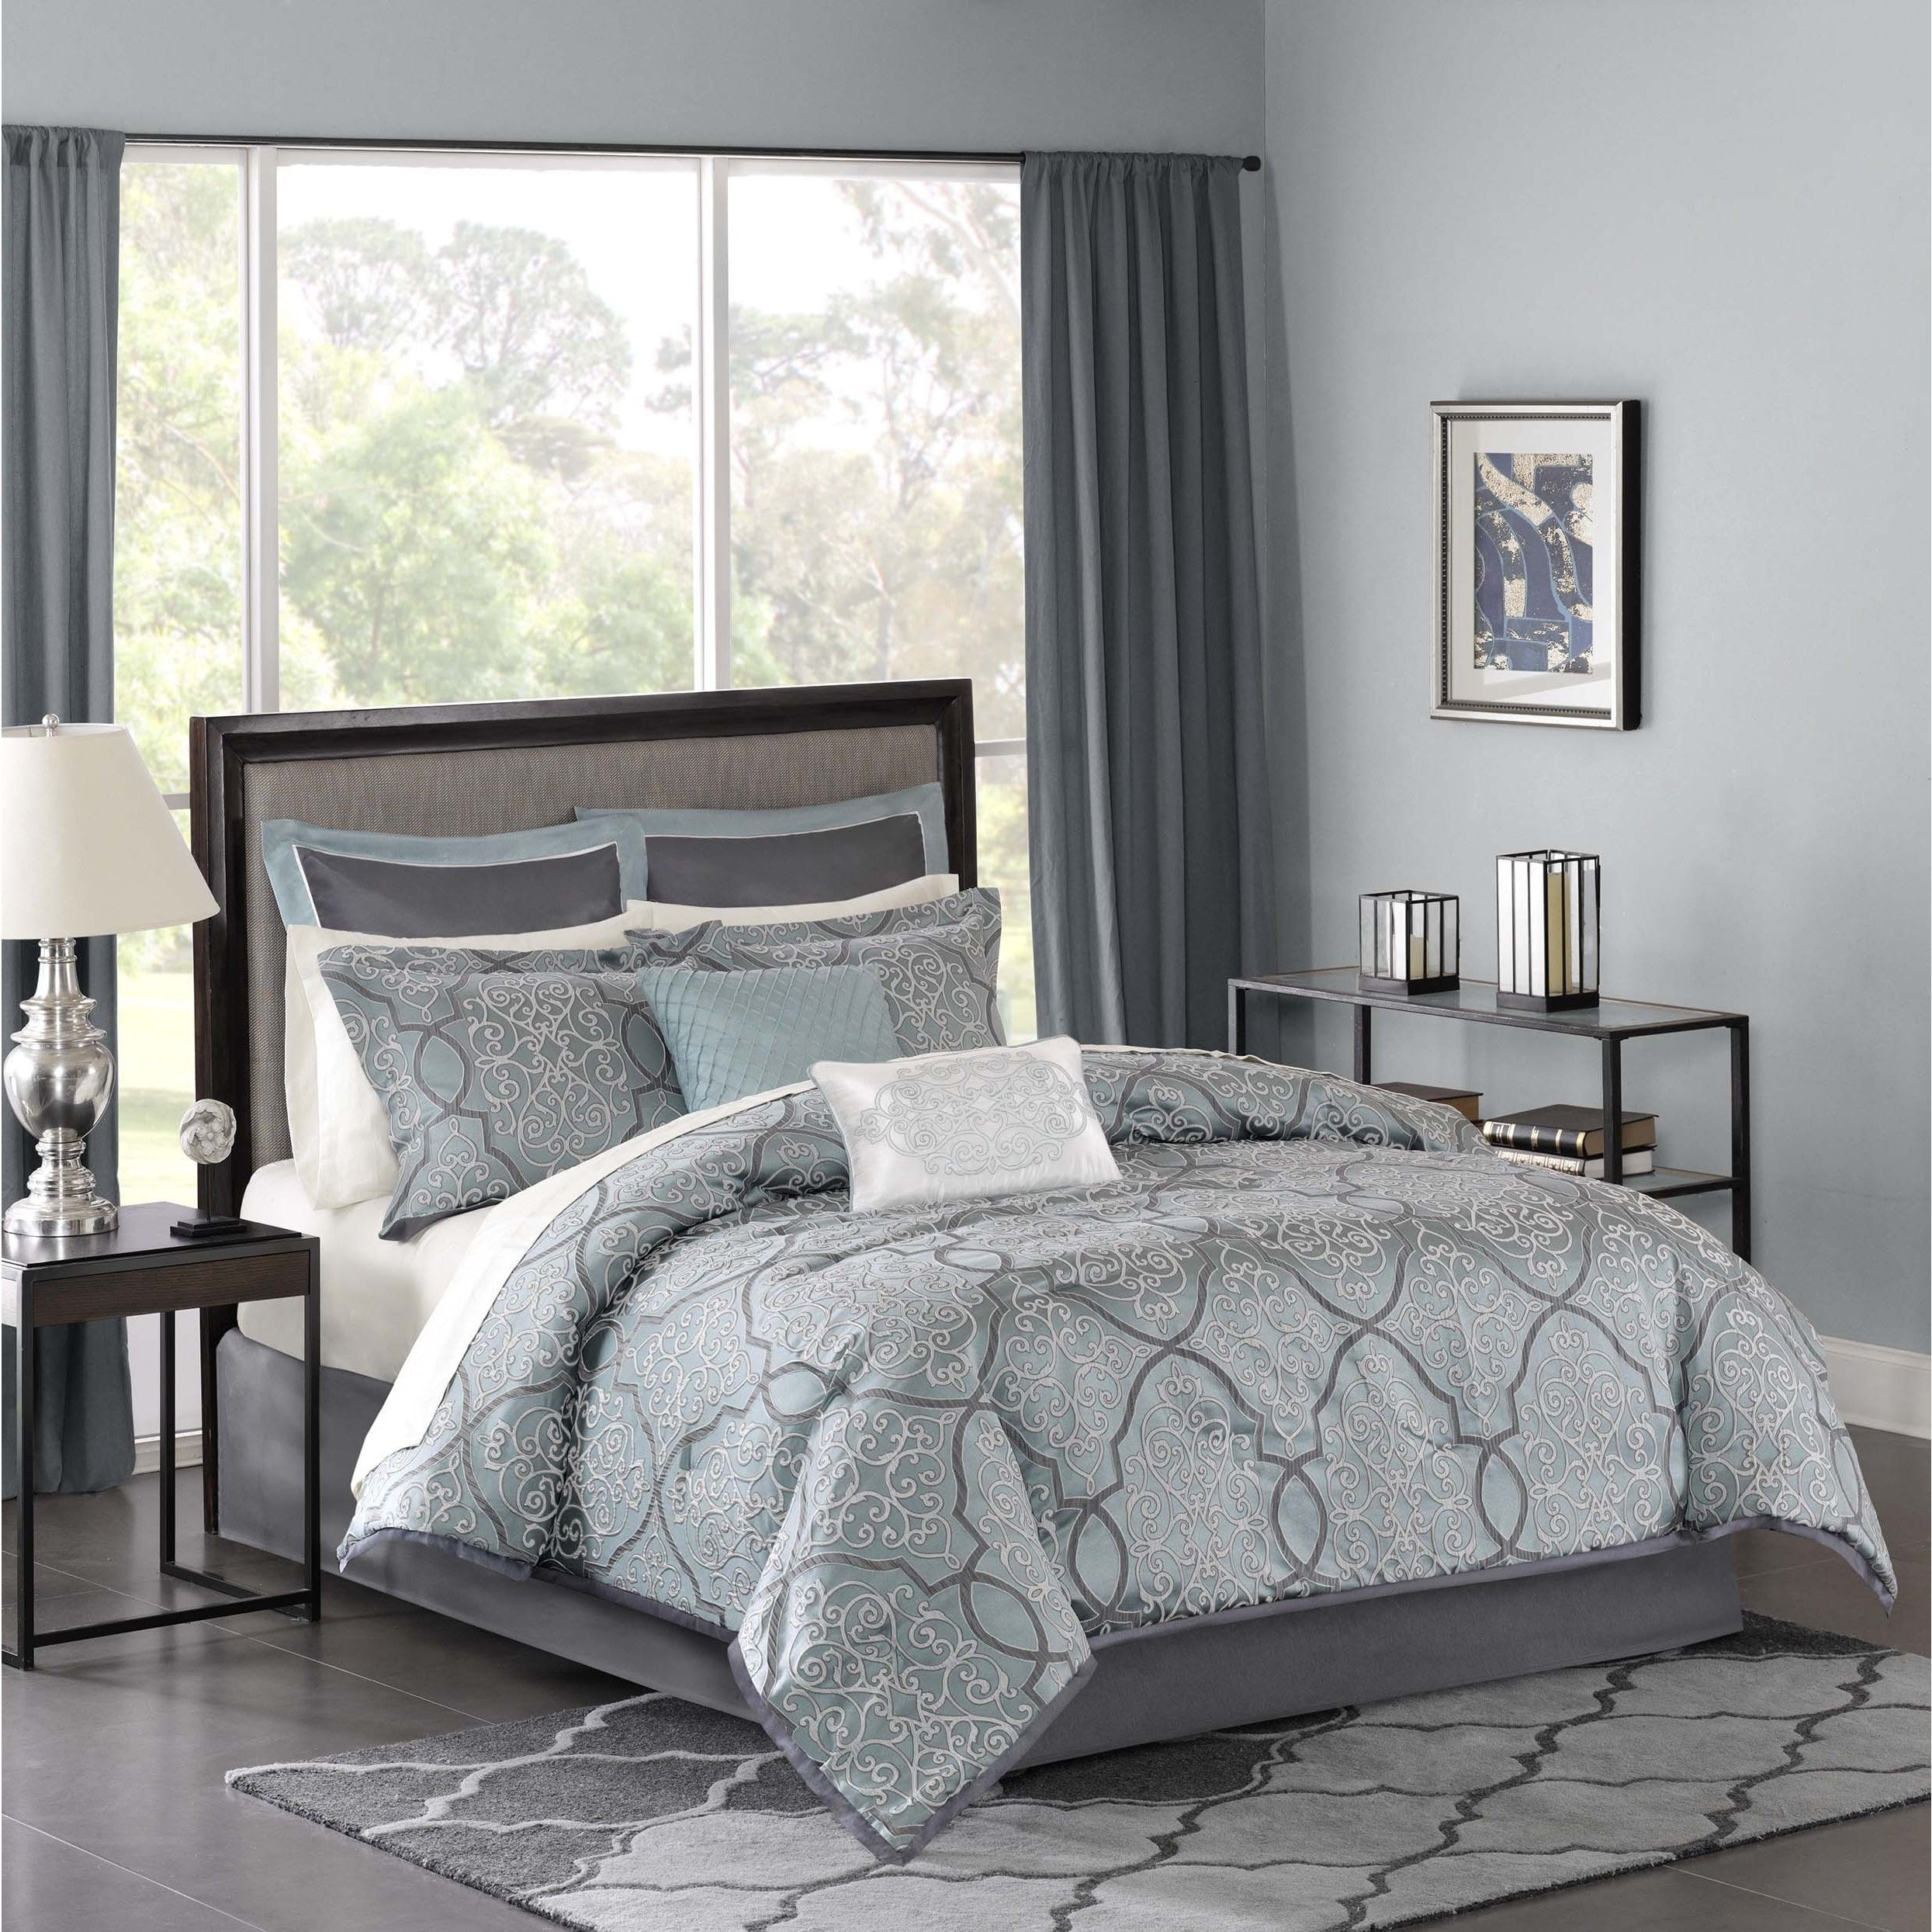 Madison Park Anouk Jacquard 12 piece plete Bed Set